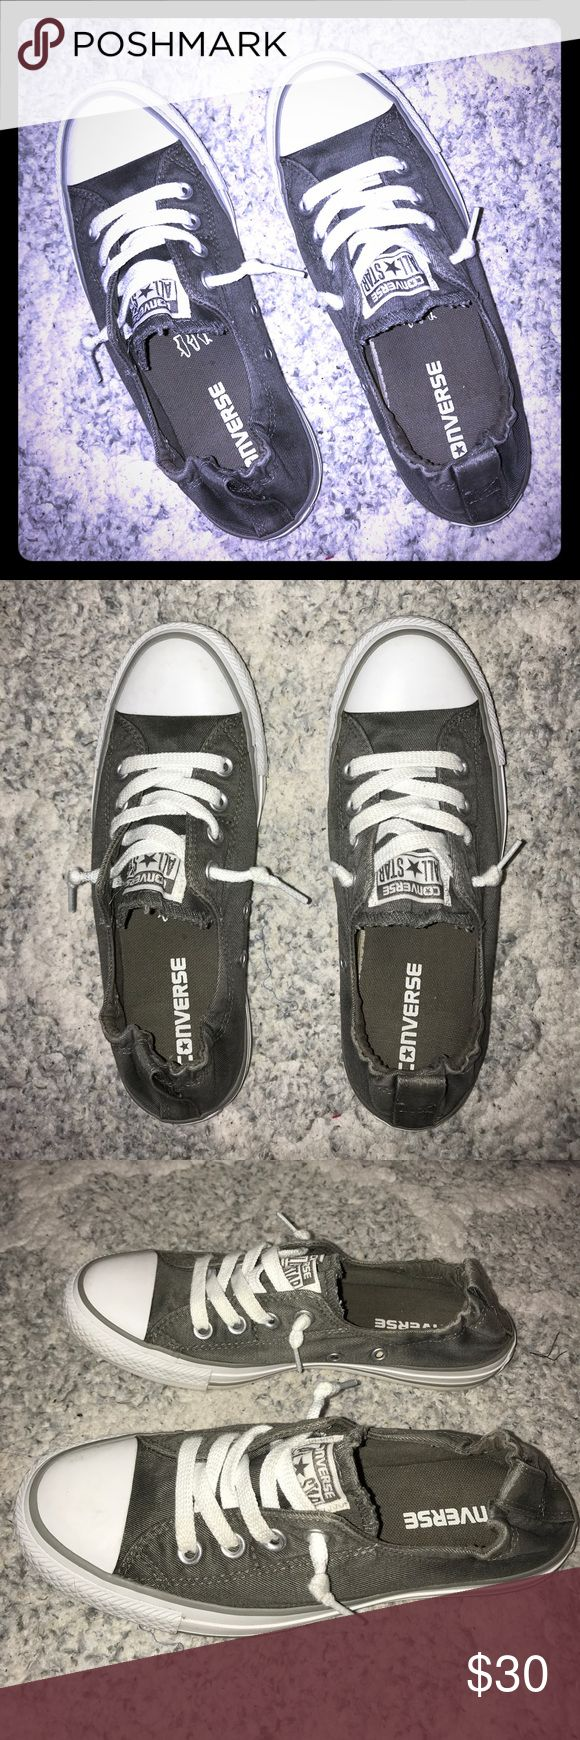 Converse slip on sneakers Elastic band no tie converse. Slate gray. New condition. Converse Shoes Sneakers